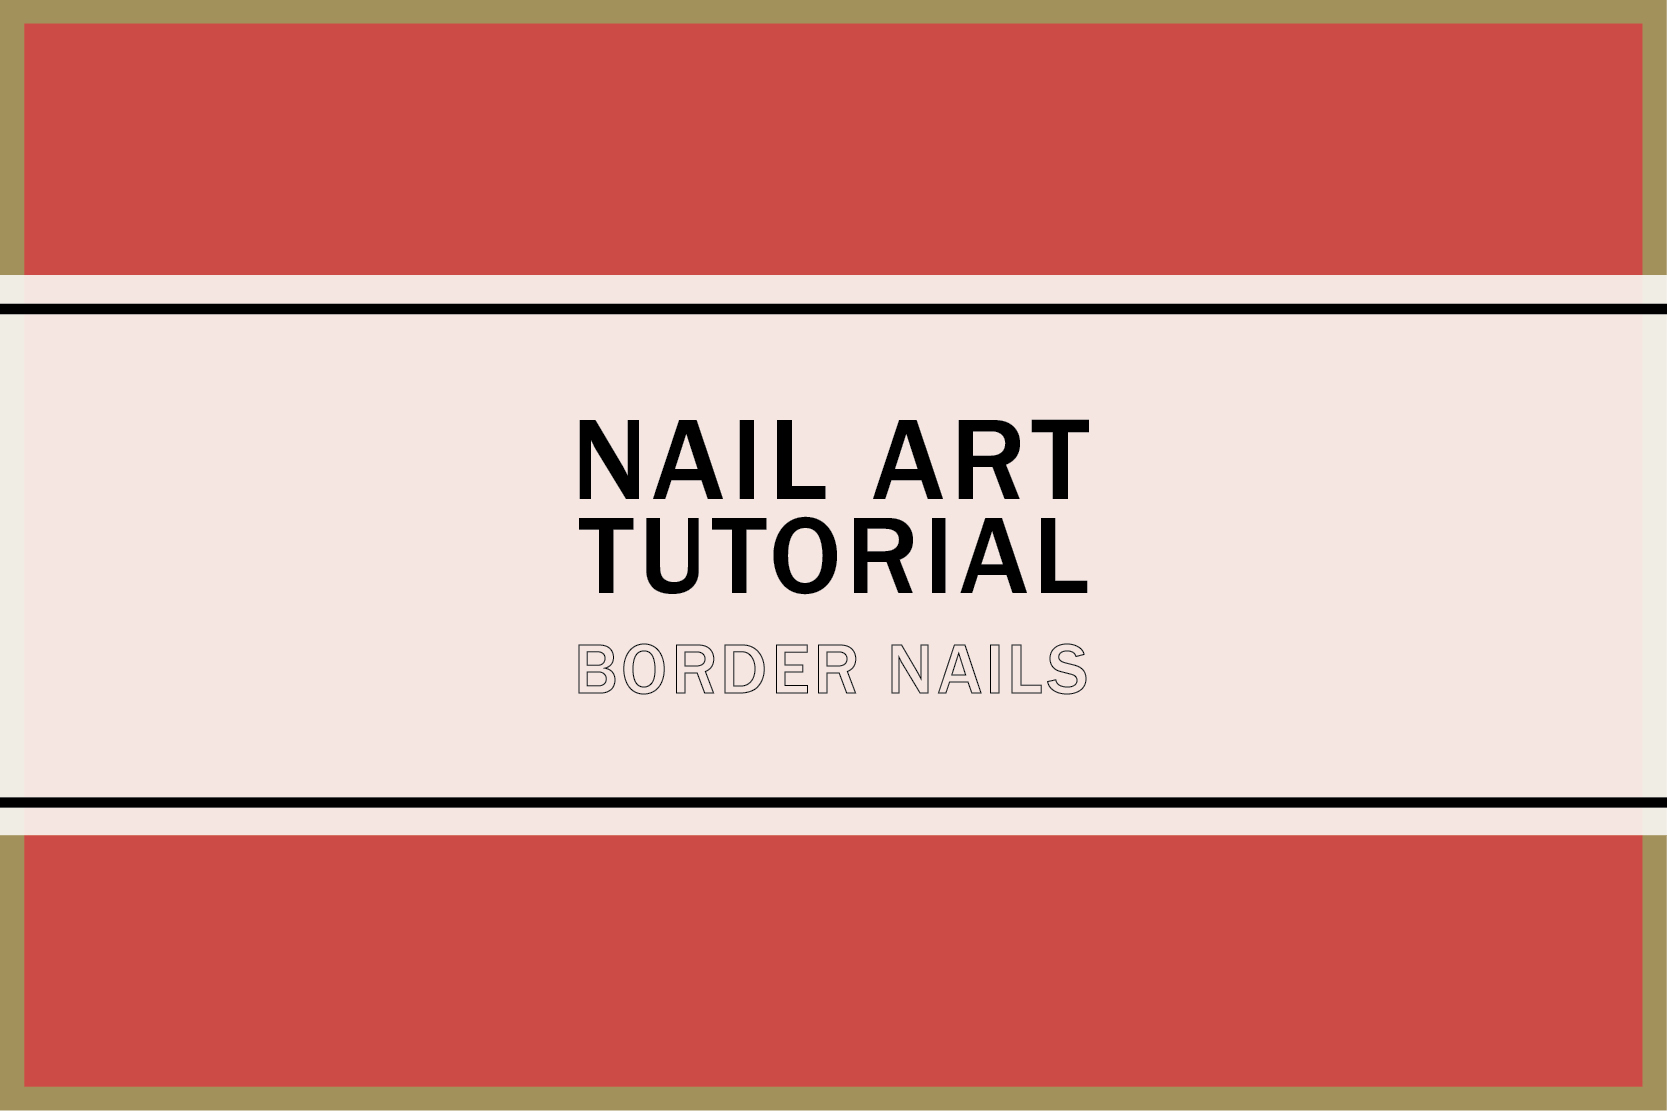 border nails